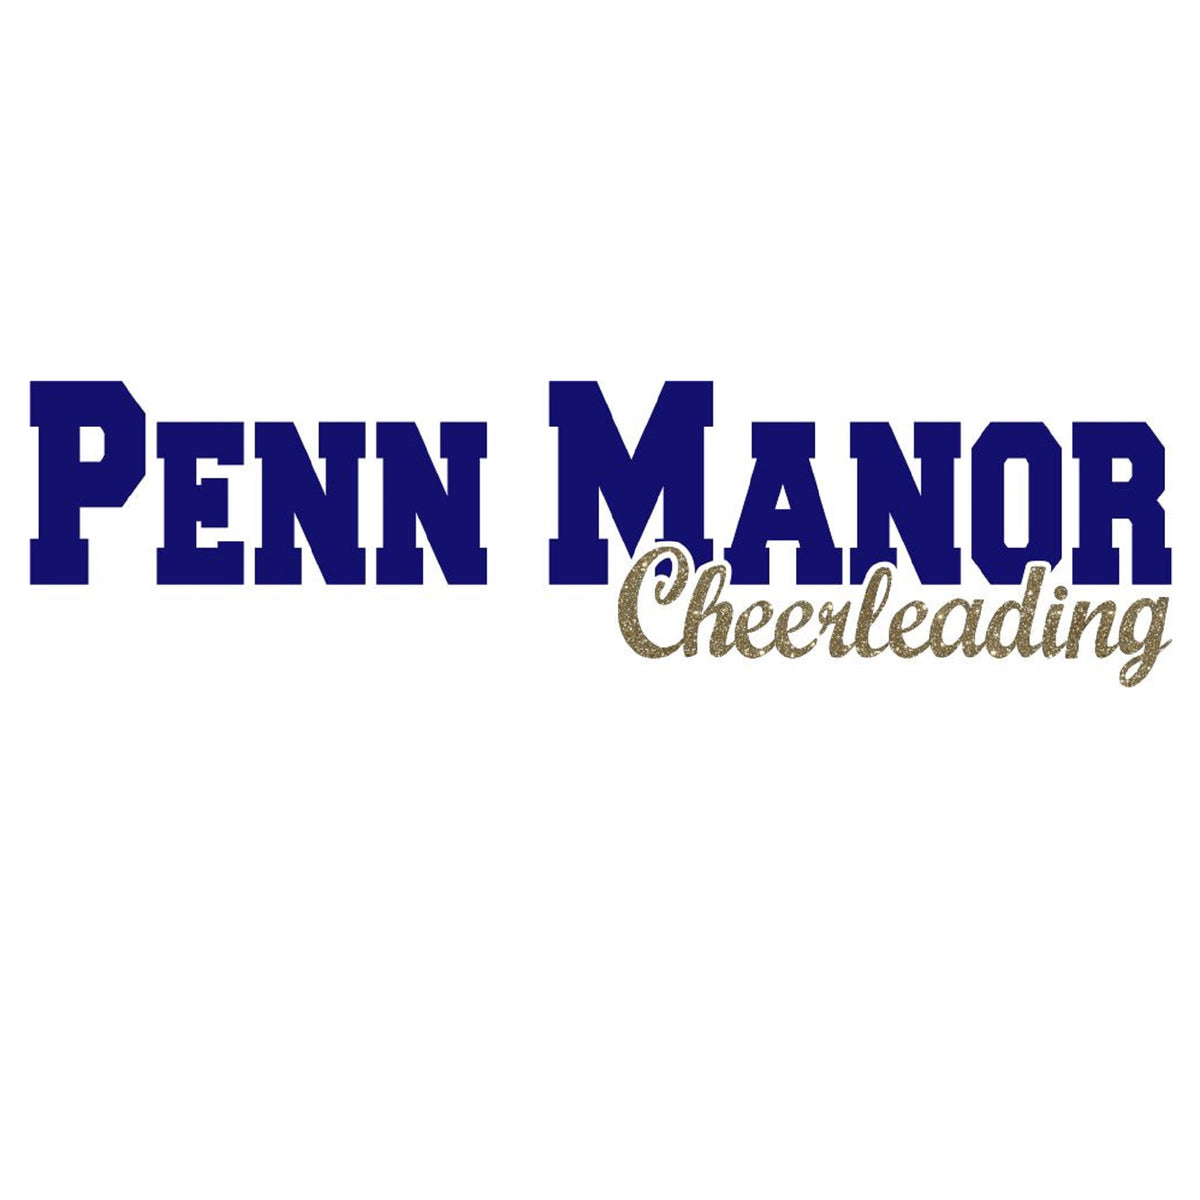 PMJC Cheerleading